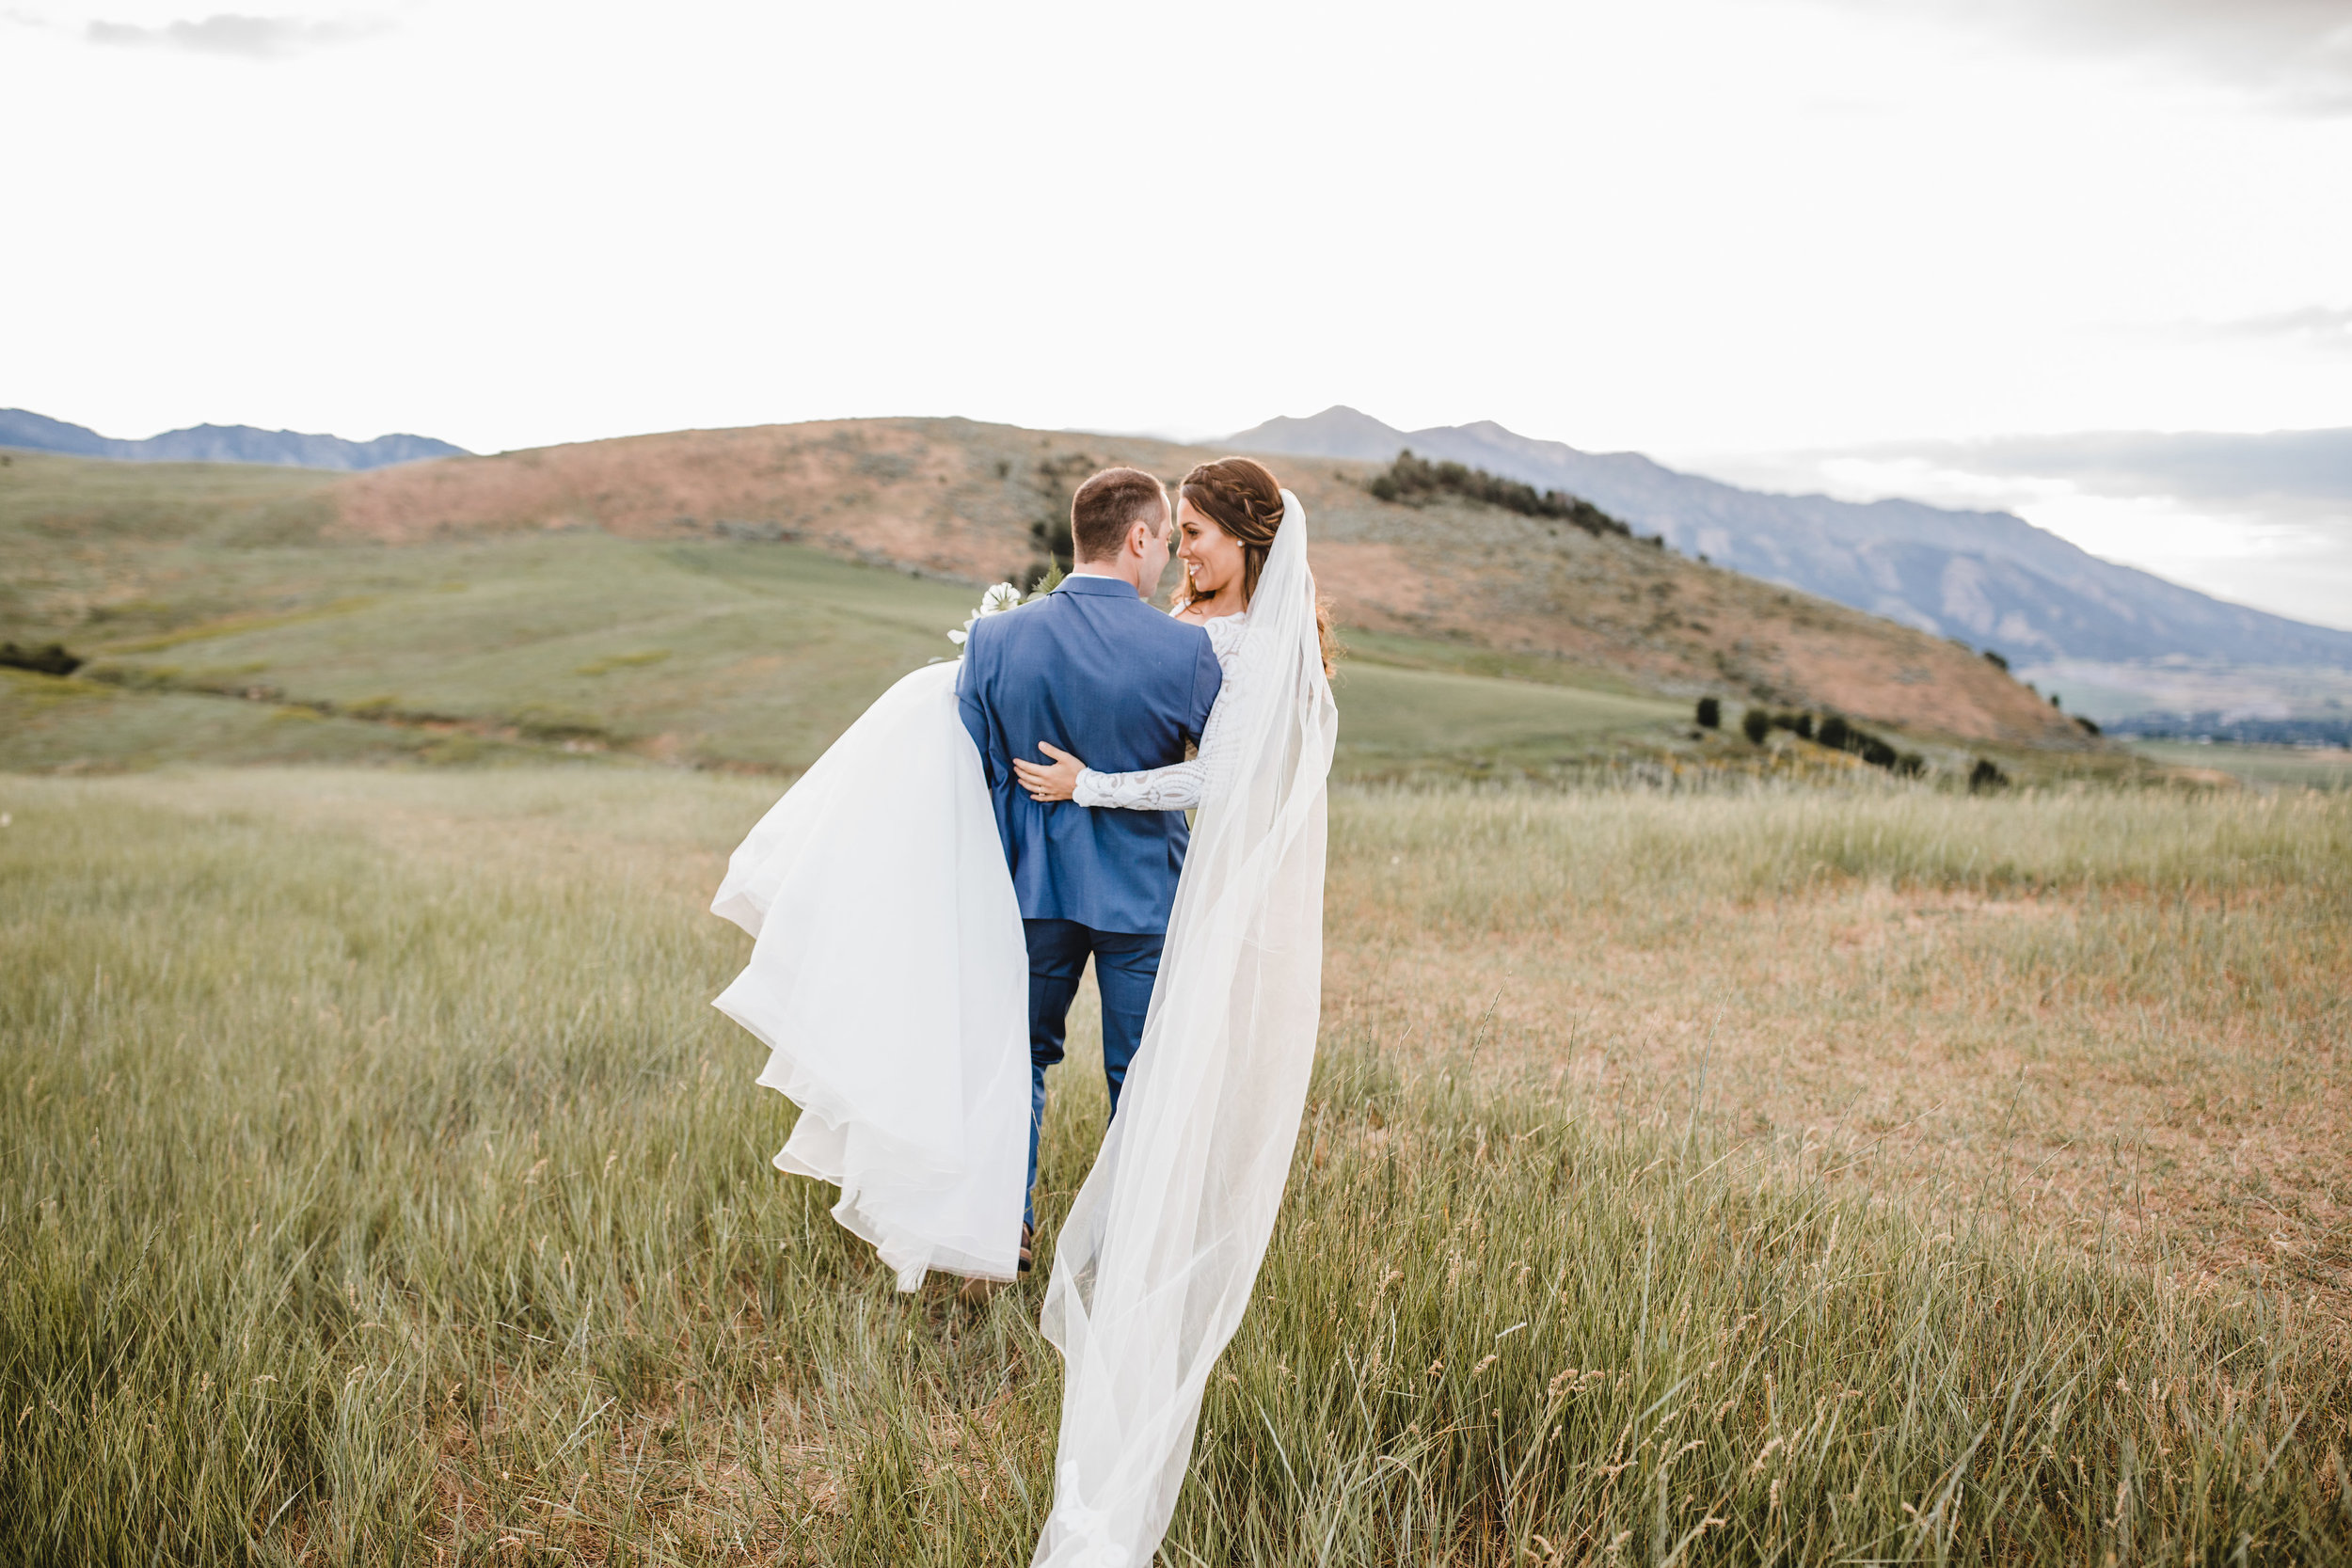 best photographer in logan utah veil kissing carrying field